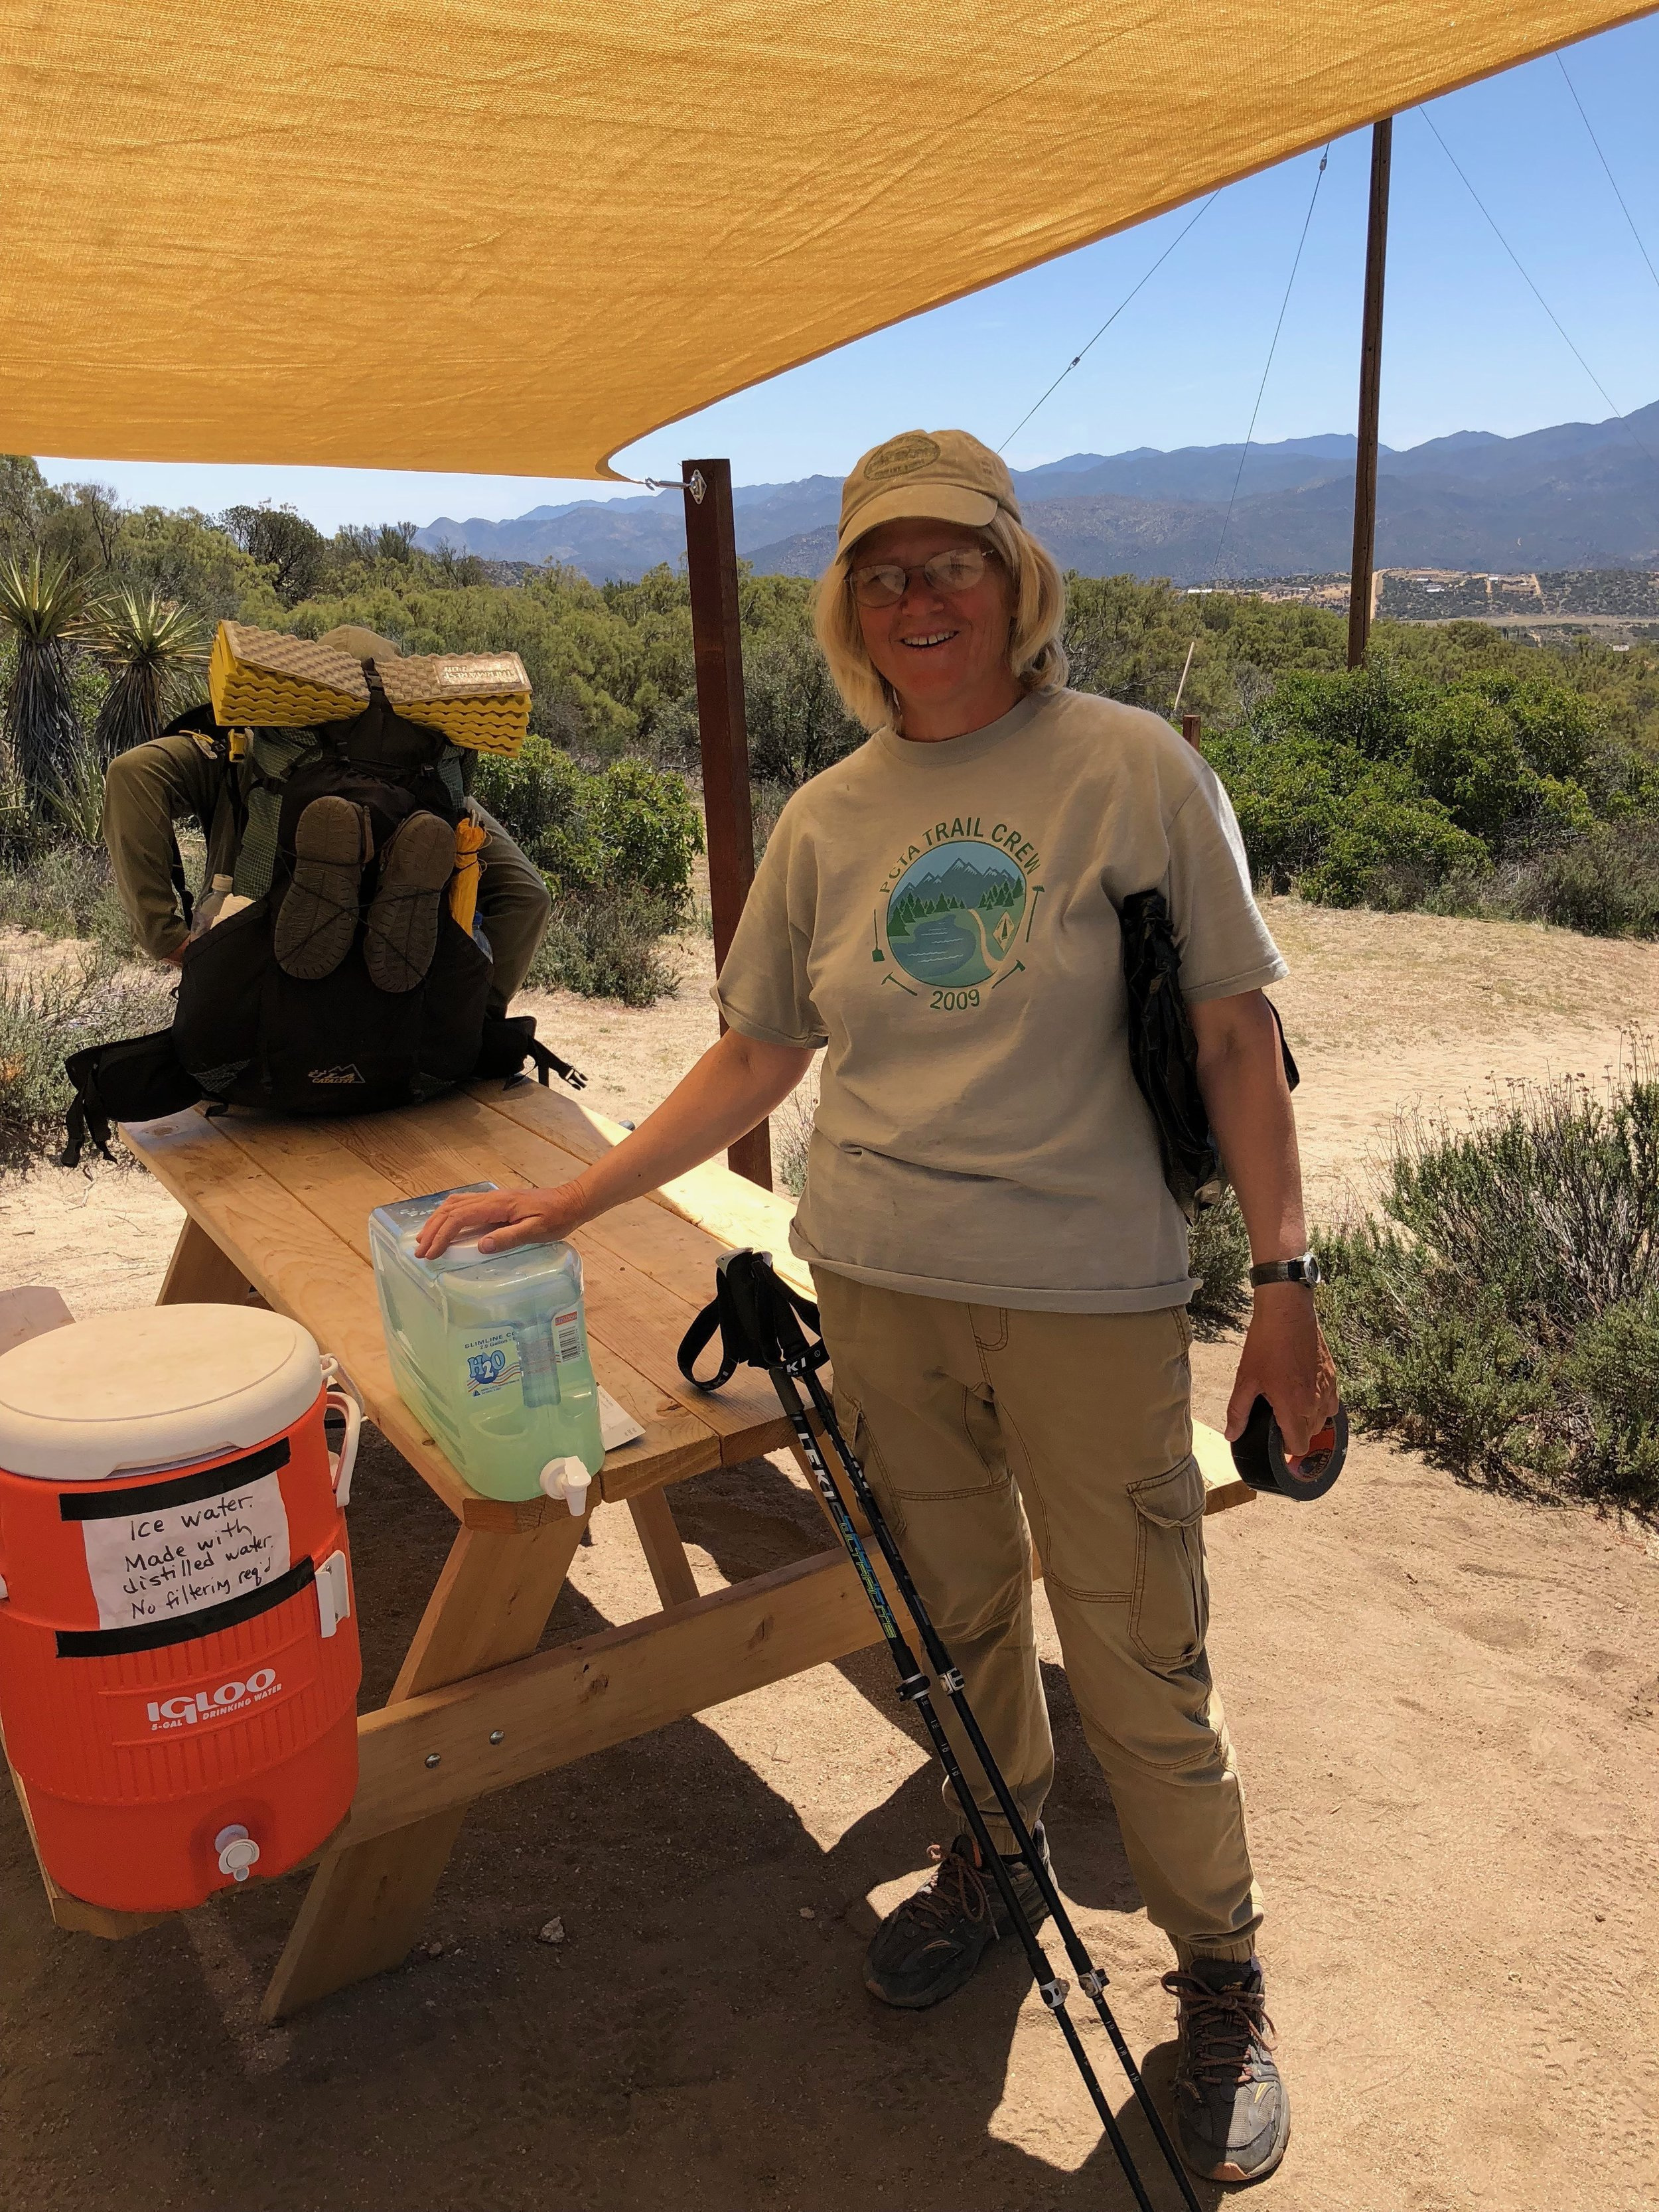 This is Mary, creator of a hiker oasis on her property.  She is a true trail angel.